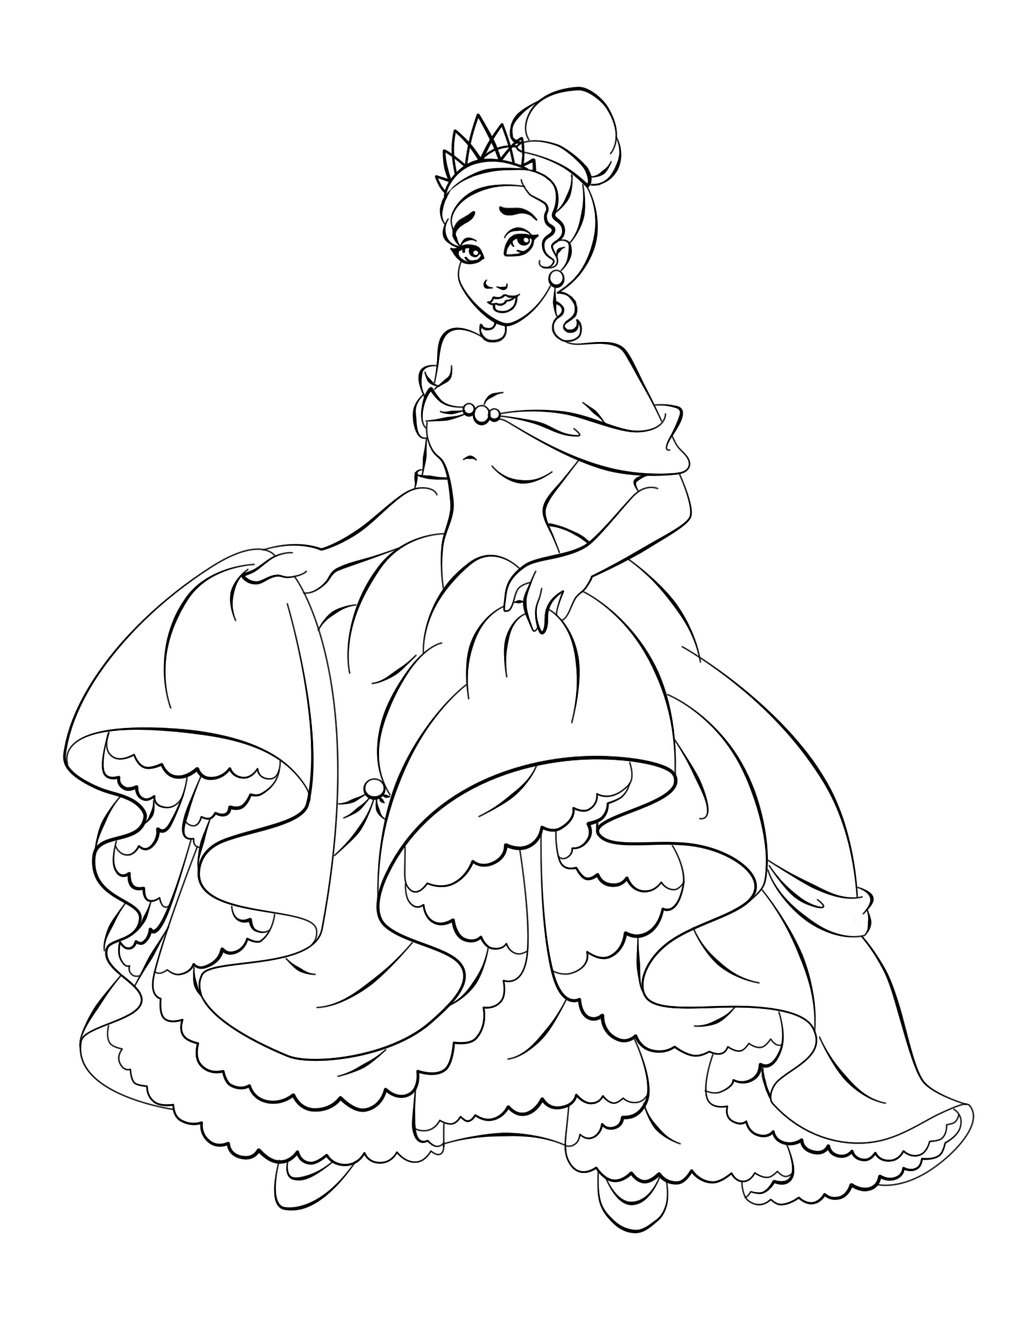 Princess Coloring Pages Brings You A Coloring Page Of Tiana From The